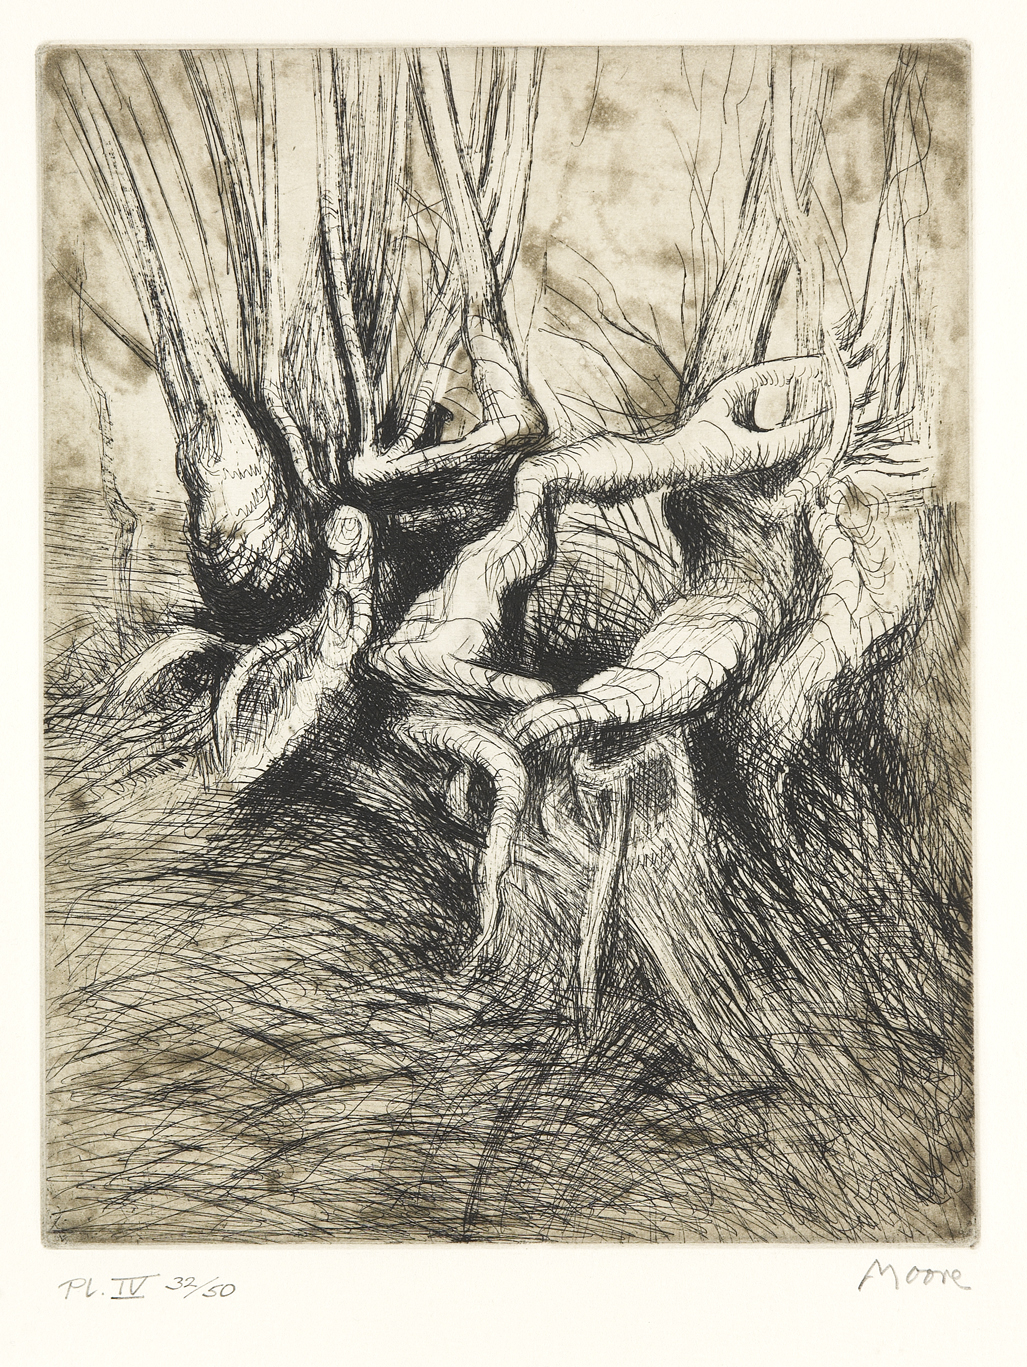 Lot 19 - HENRY MOORE (1898-1986)